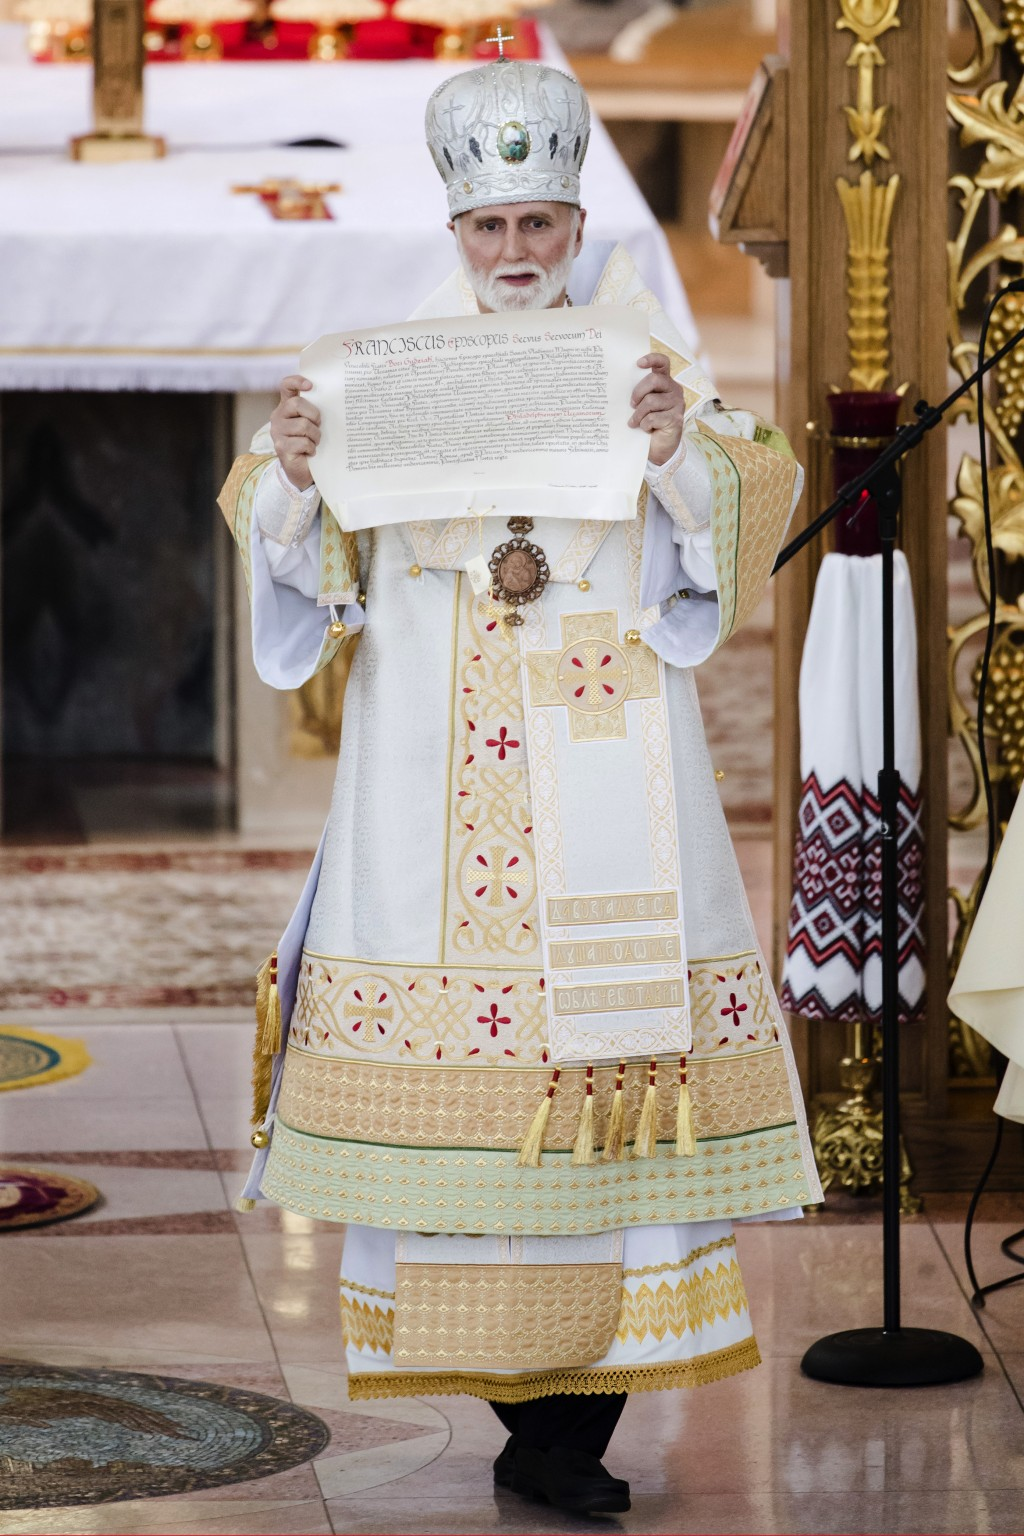 Incoming Metropolitan Archbishop of the Ukrainian Catholic Diocese of Philadelphia Borys Gudziak, displays a document from Pope Francis during a cerem